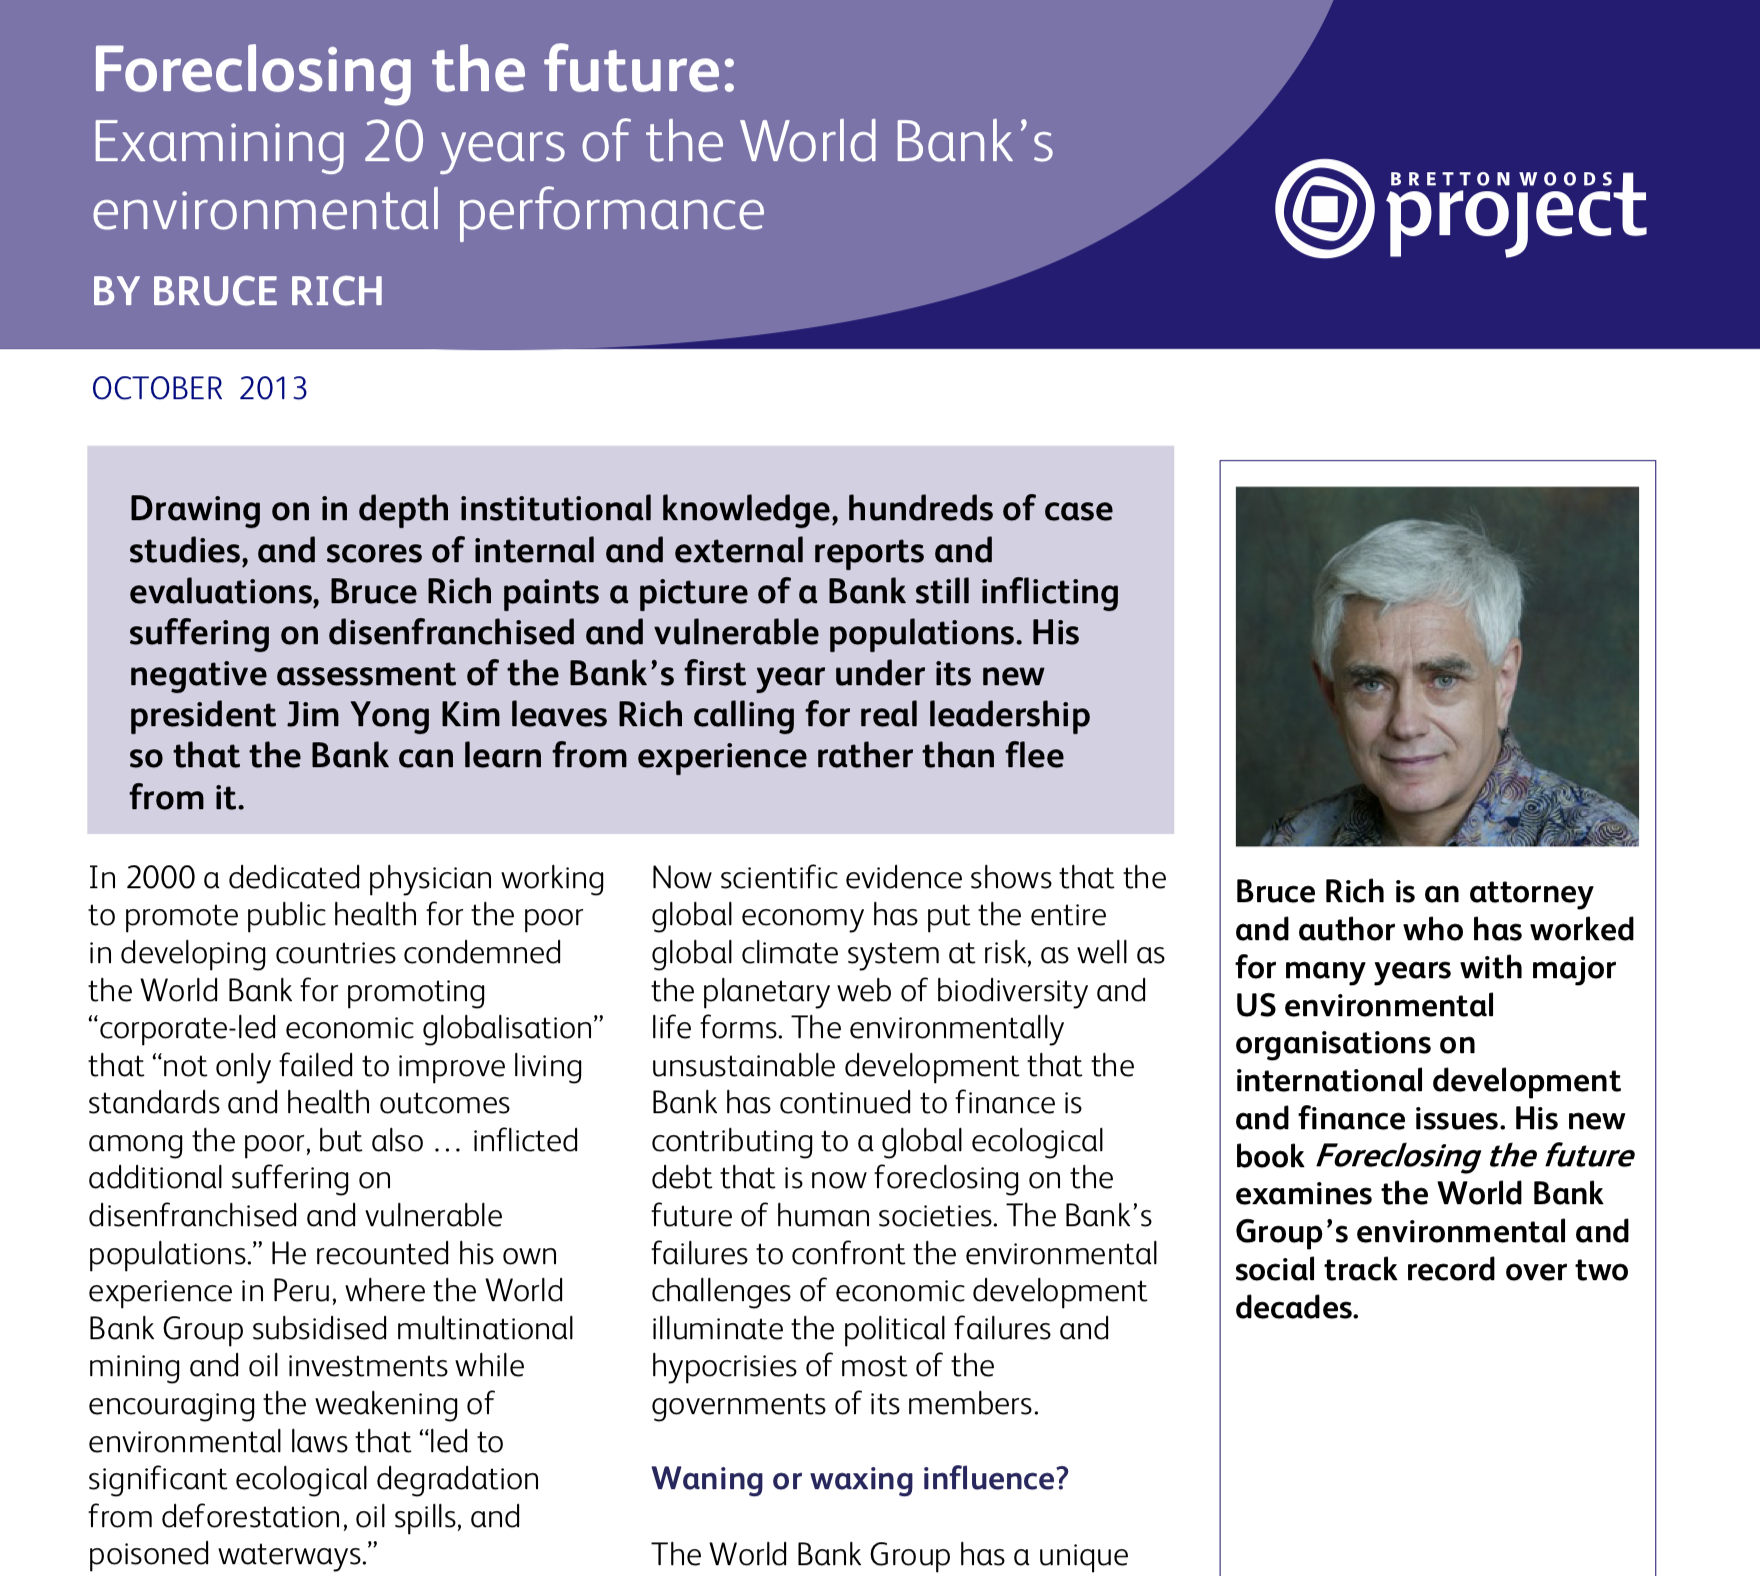 Foreclosing the Future: Examining 20 years of the World Bank's Environmental Performance